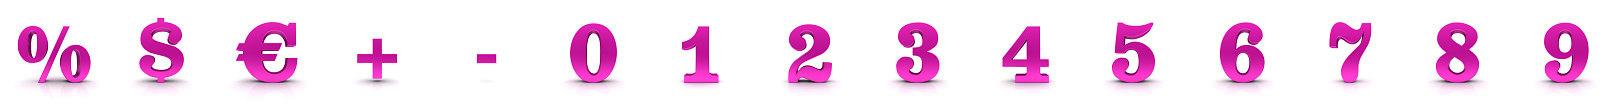 Numbers pink 3d 0 1 2 3 4 5 6 7 8 9 percent sign percentage symbol dollar euro sign plus minus icons sale price discount drop off construction set 3d render graphic